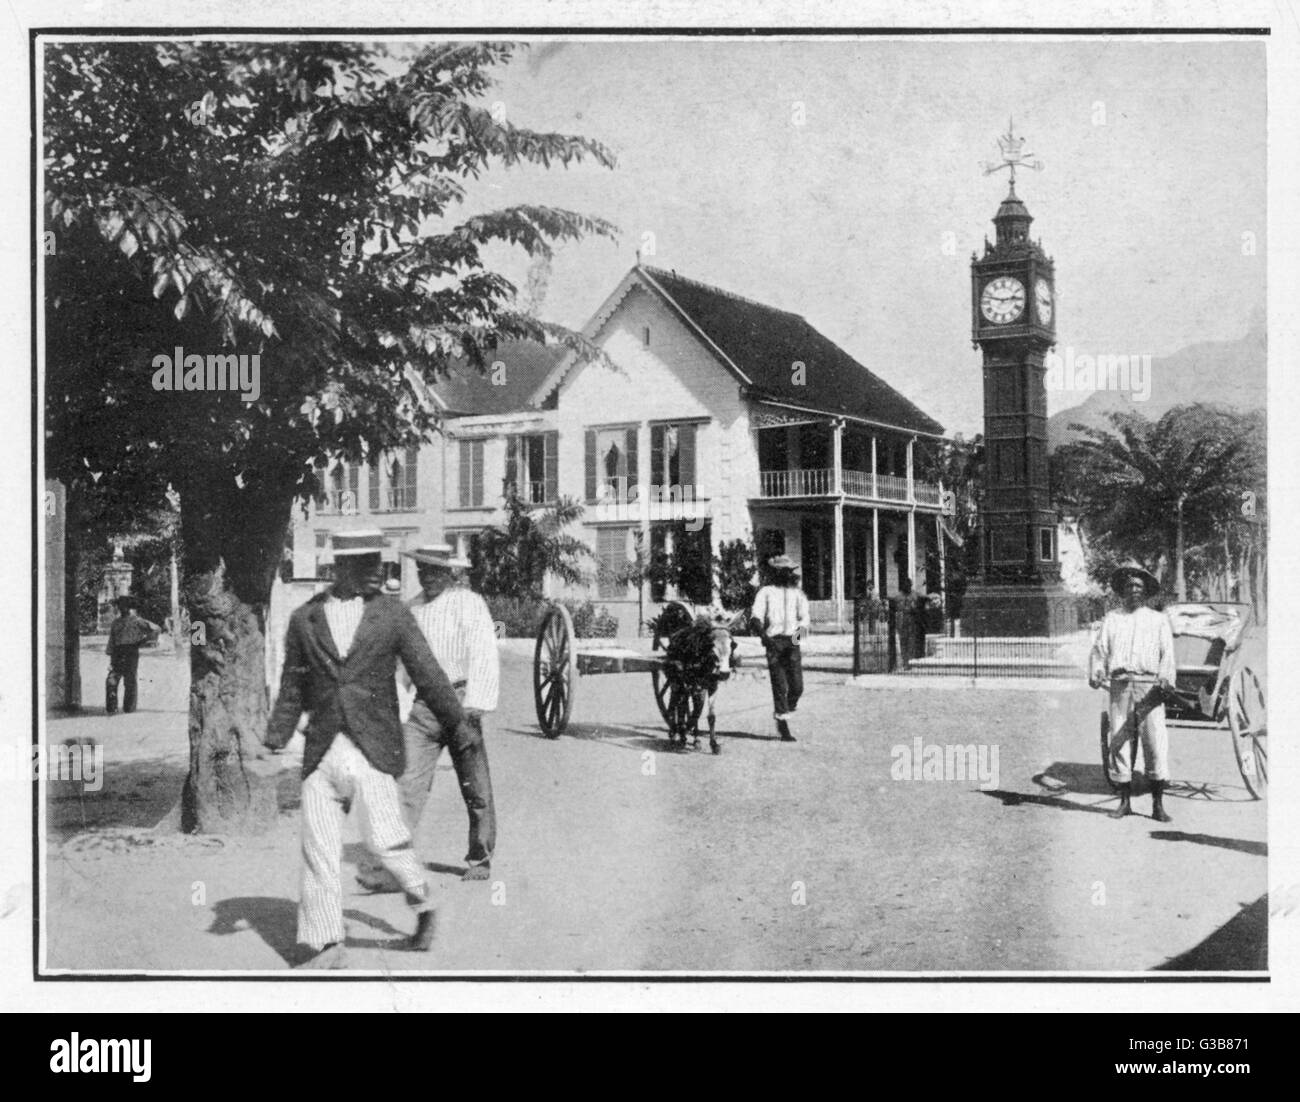 Seychelles:  Victoria, with  Victoria Memorial and the Town Hall      Date: 1903 - Stock Image